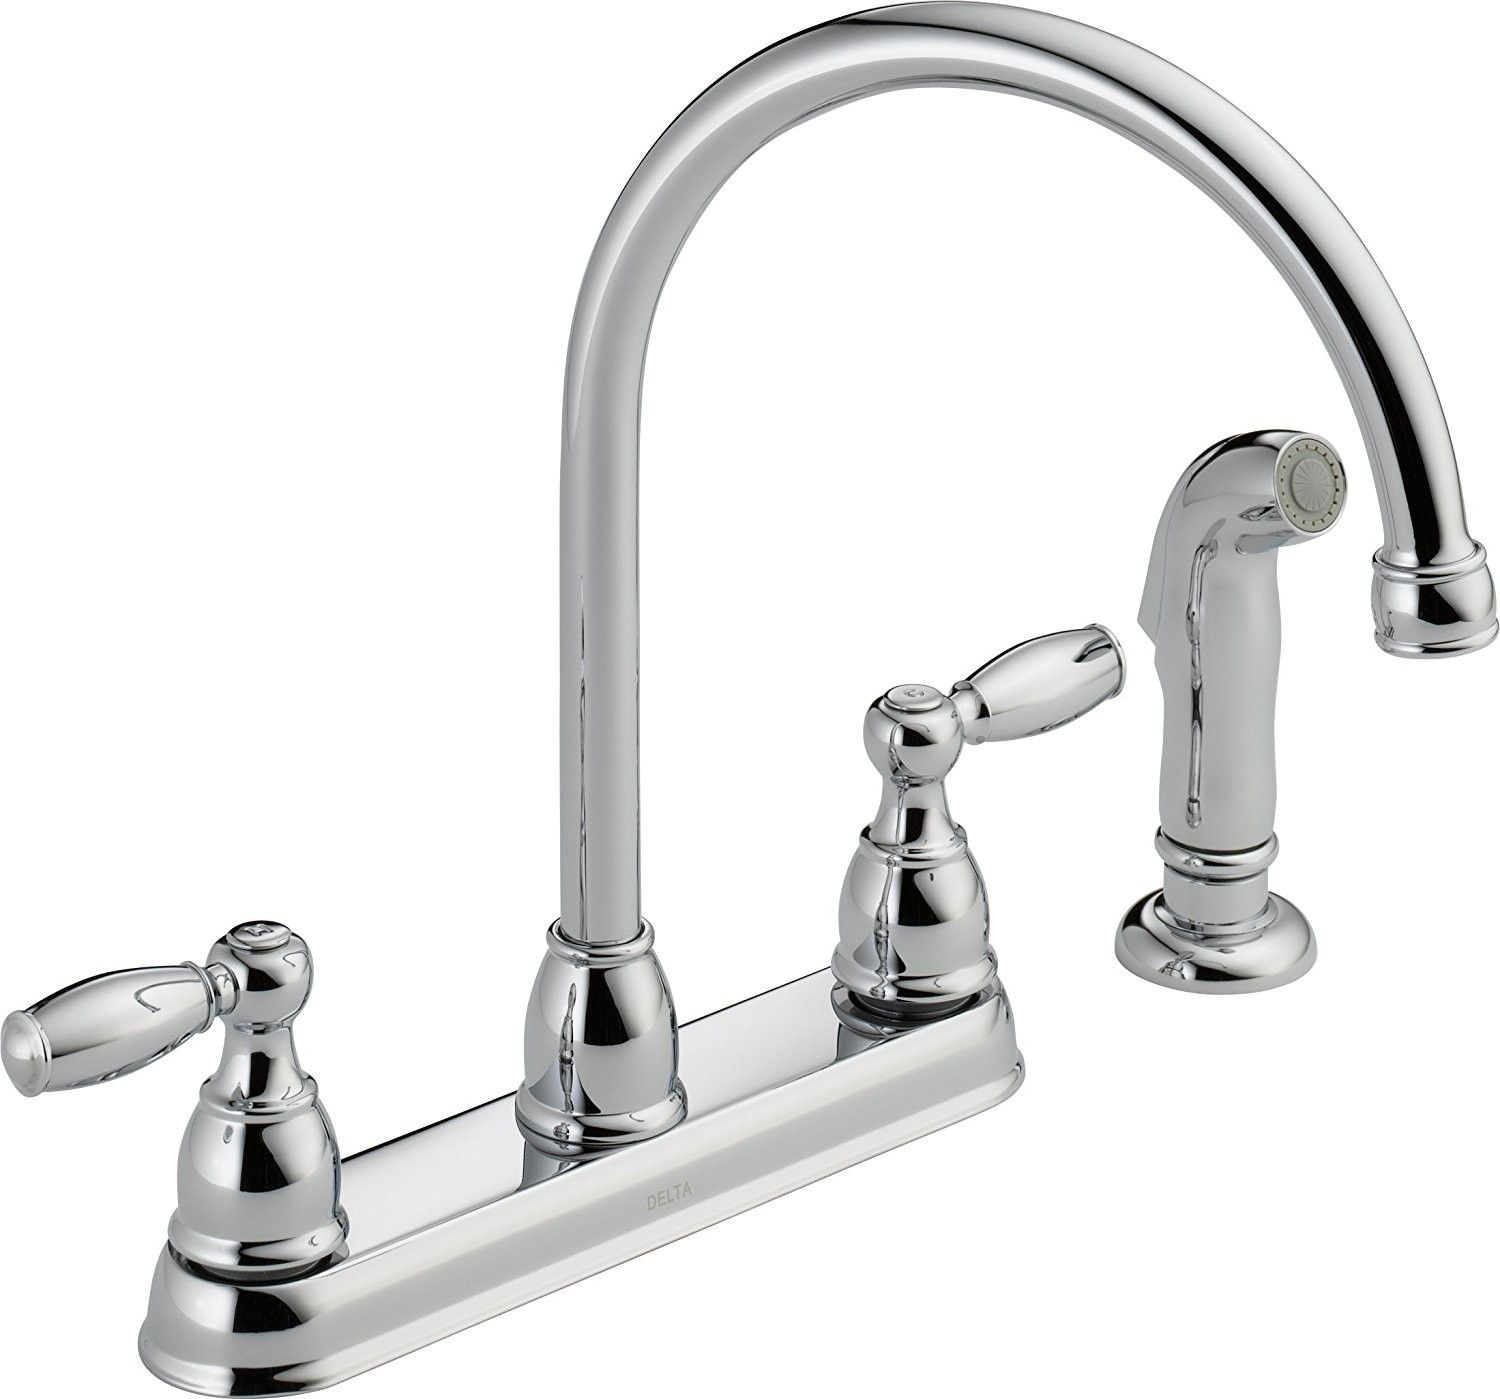 You Searched For Faucet Kitchen Faucet